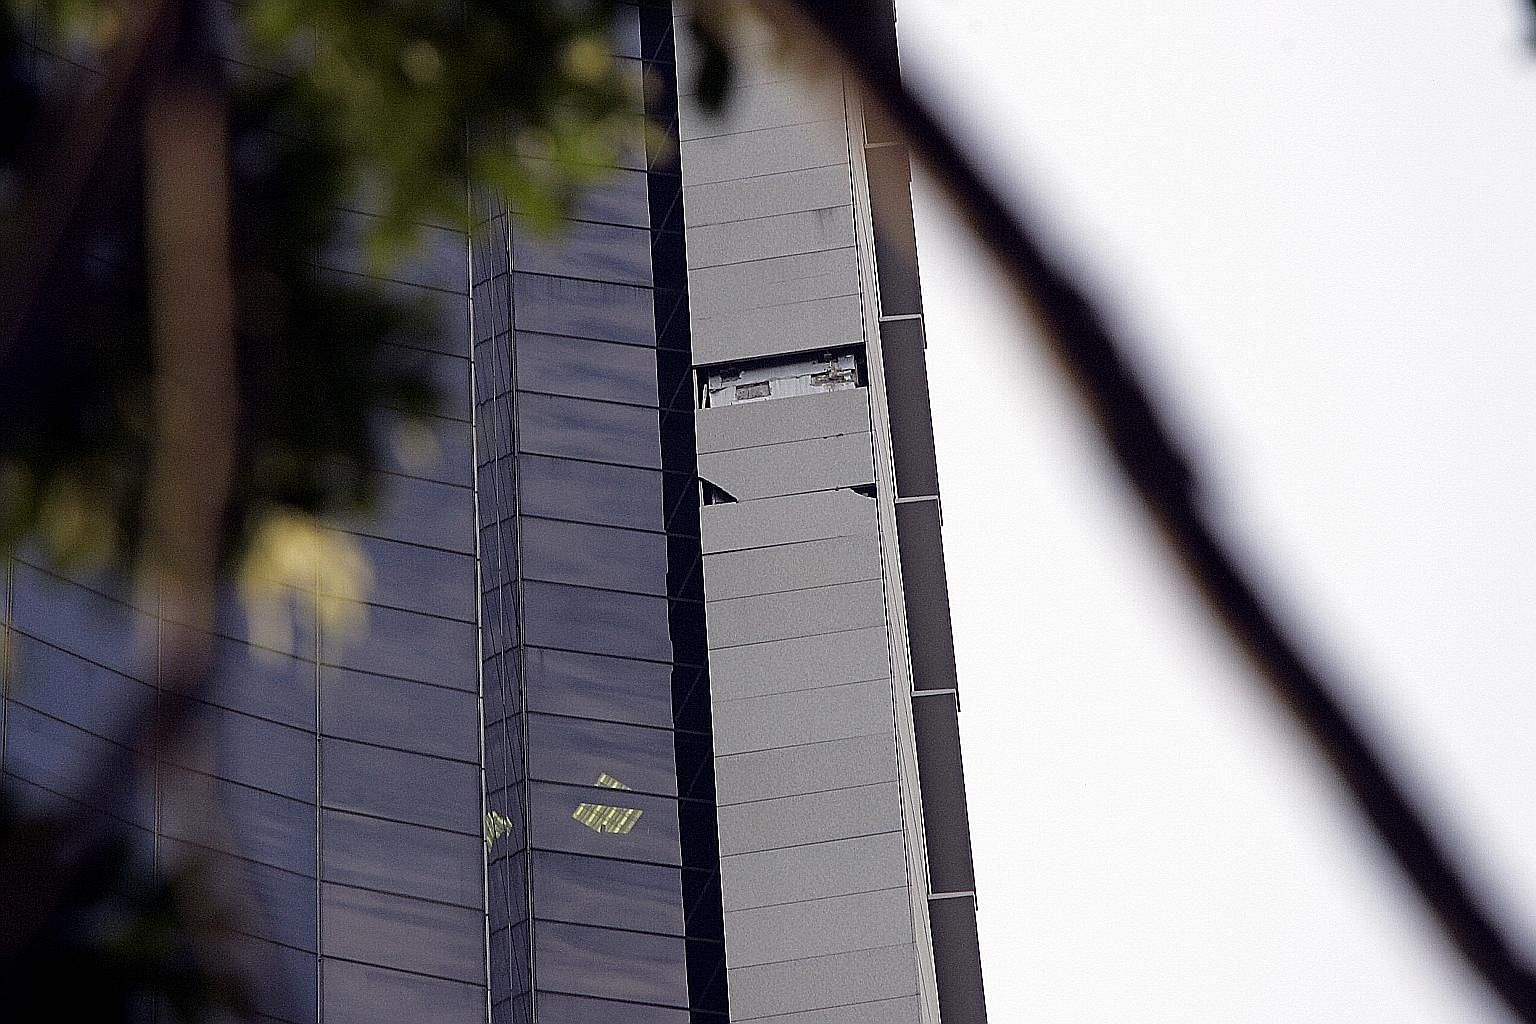 Above: In 2004, a panel fell off Centennial Tower's facade from the 29th storey. The incident, in which no one was hurt, led Millenia to sue Dragages and Builders Shop in 2006, and the parties reached a settlement in 2007.